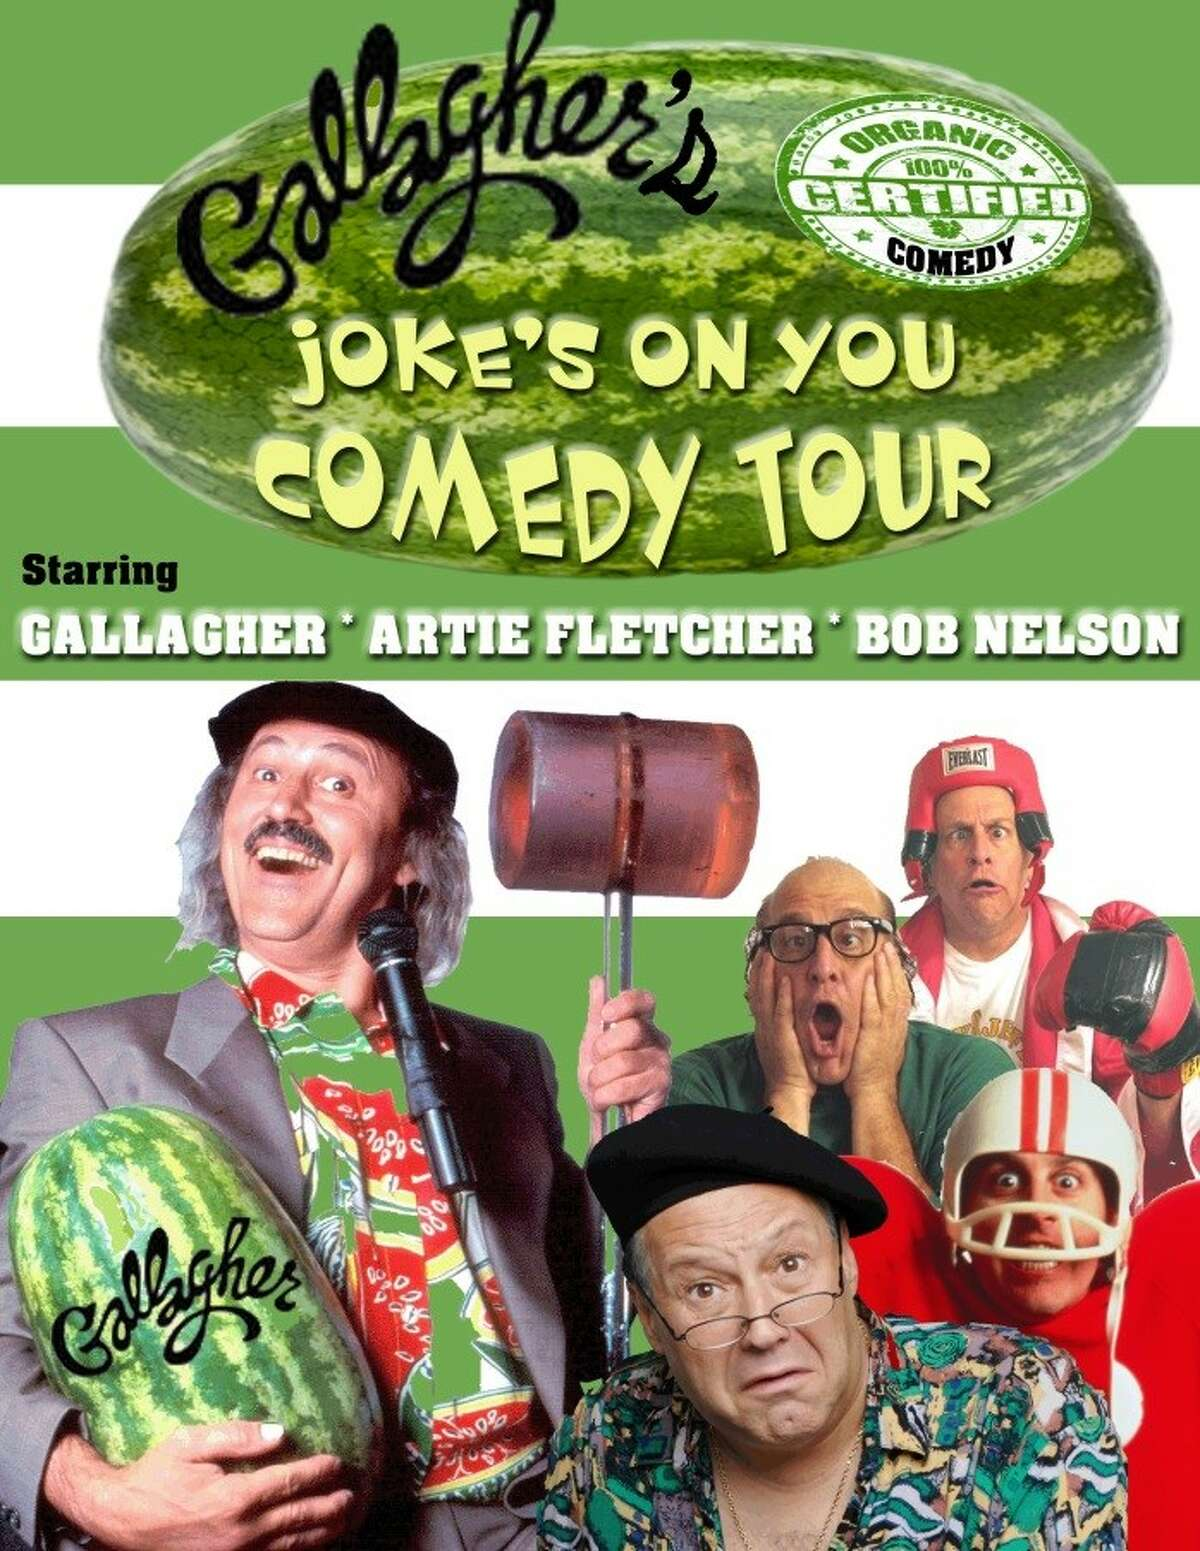 Galagher's Joke's on Your Tour, featuring (left to right) comedians Gallagher, Artie Fletcher and Bob Nelson.